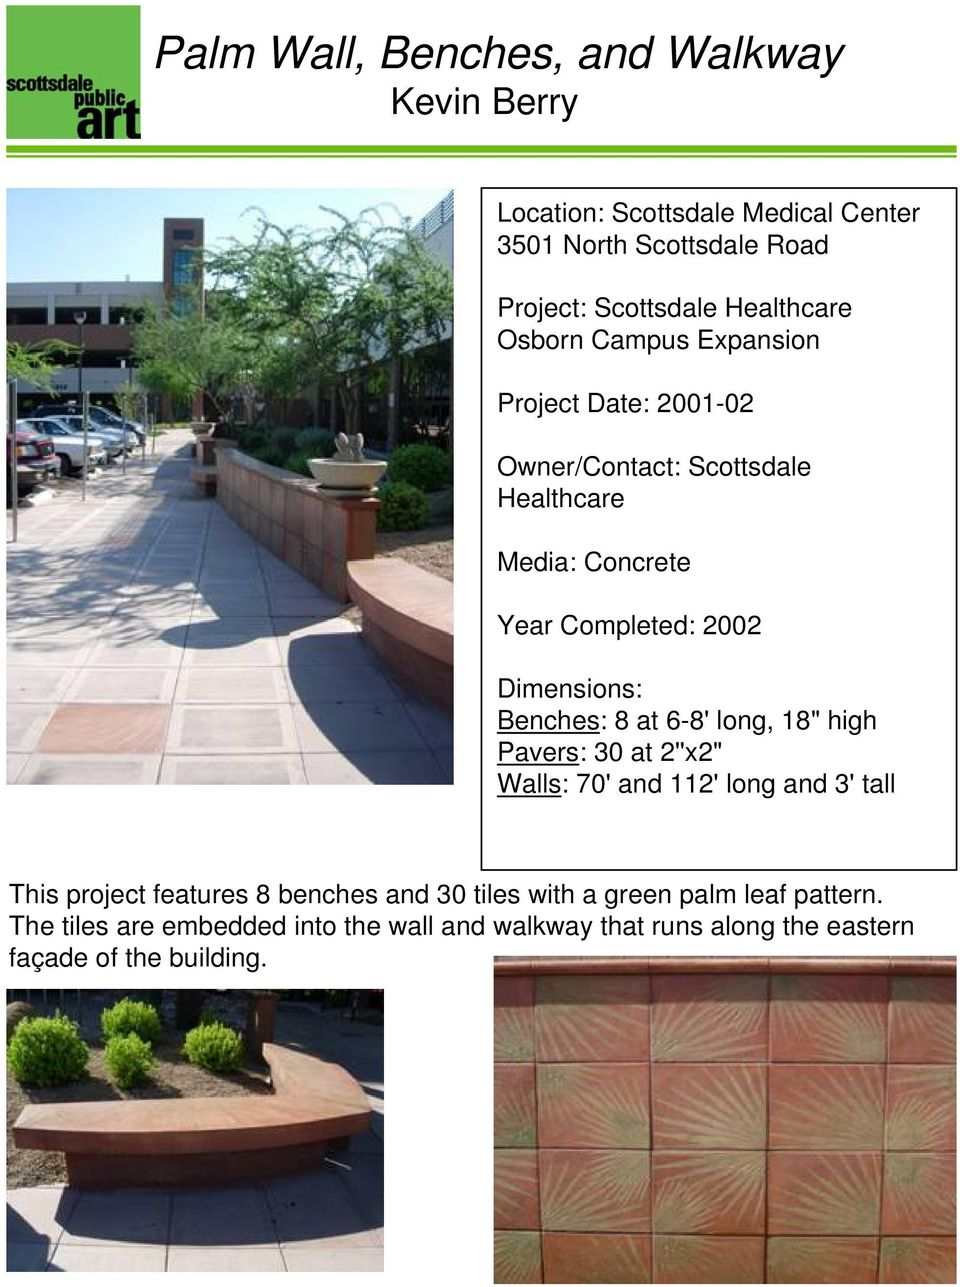 "Dimensions: Benches: 8 at 6-8' long, 18"" high Pavers: 30 at 2''x2"" Walls: 70' and 112' long and 3' tall This project features 8"